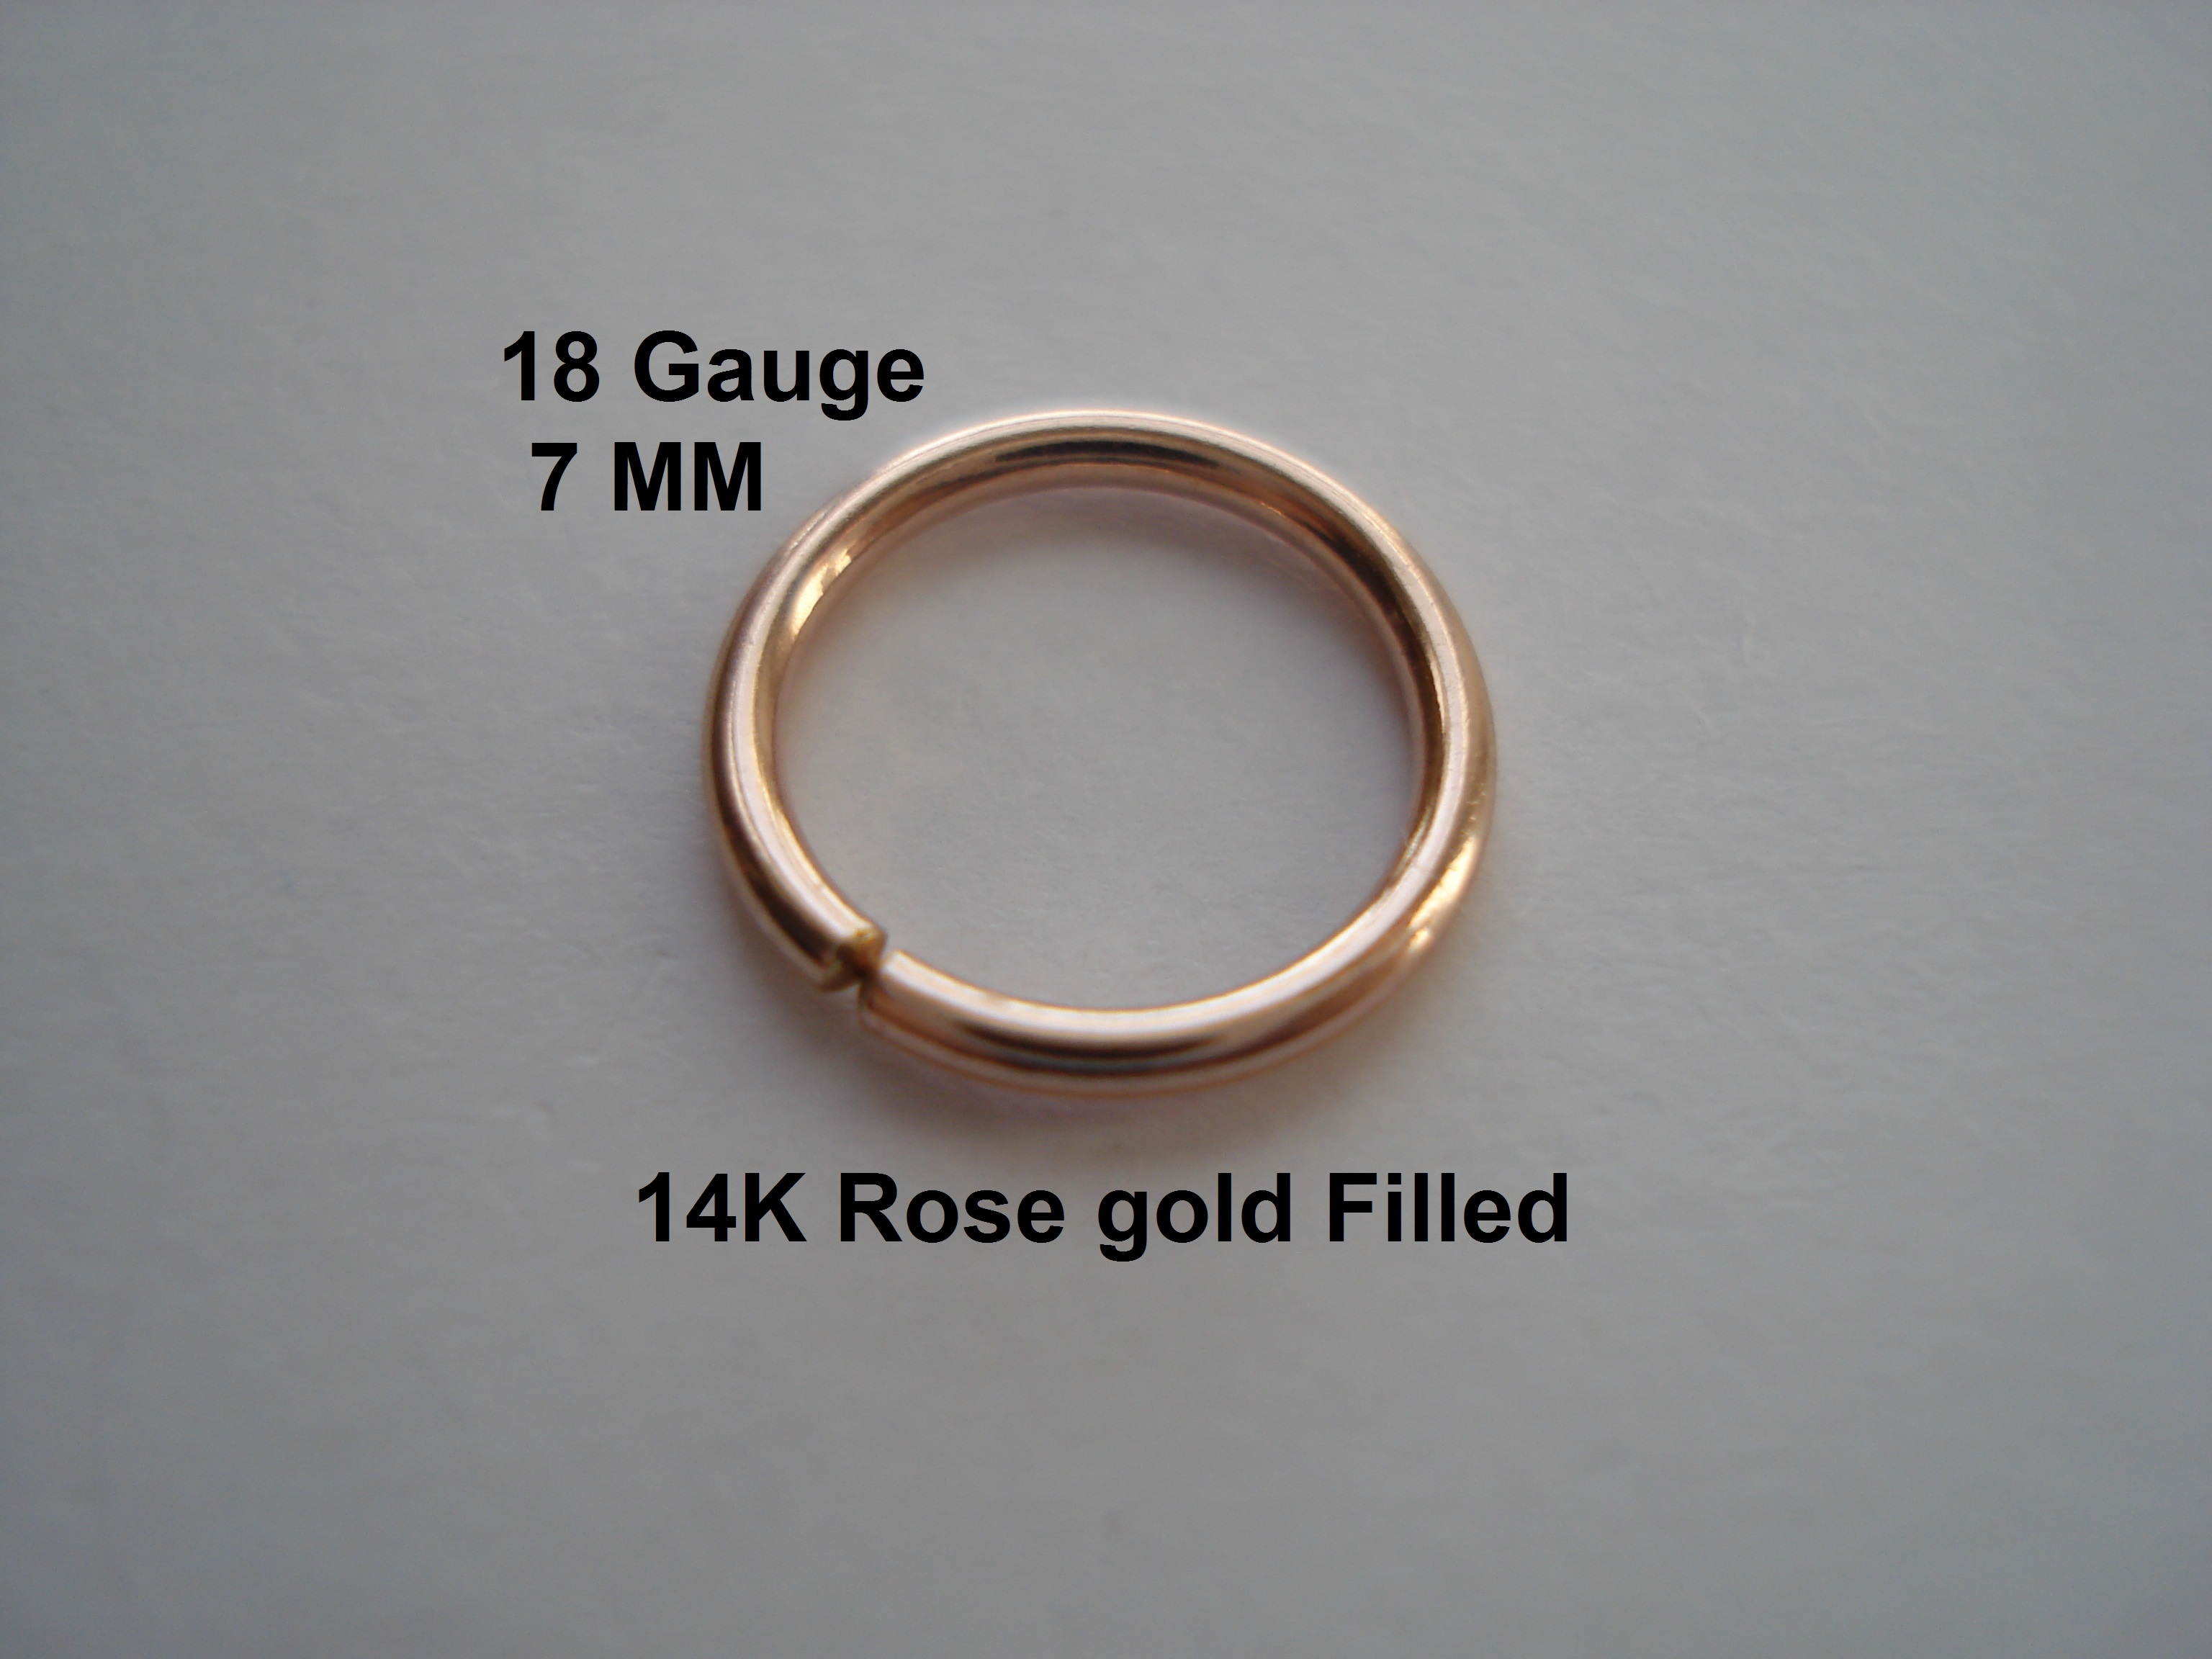 20e87d66c 18G Gauge 14K Rose Gold Filled, Septum/Nose Ring/Hoop Helix/Earring/tragus,7  Mm Inner Diameter on Luulla